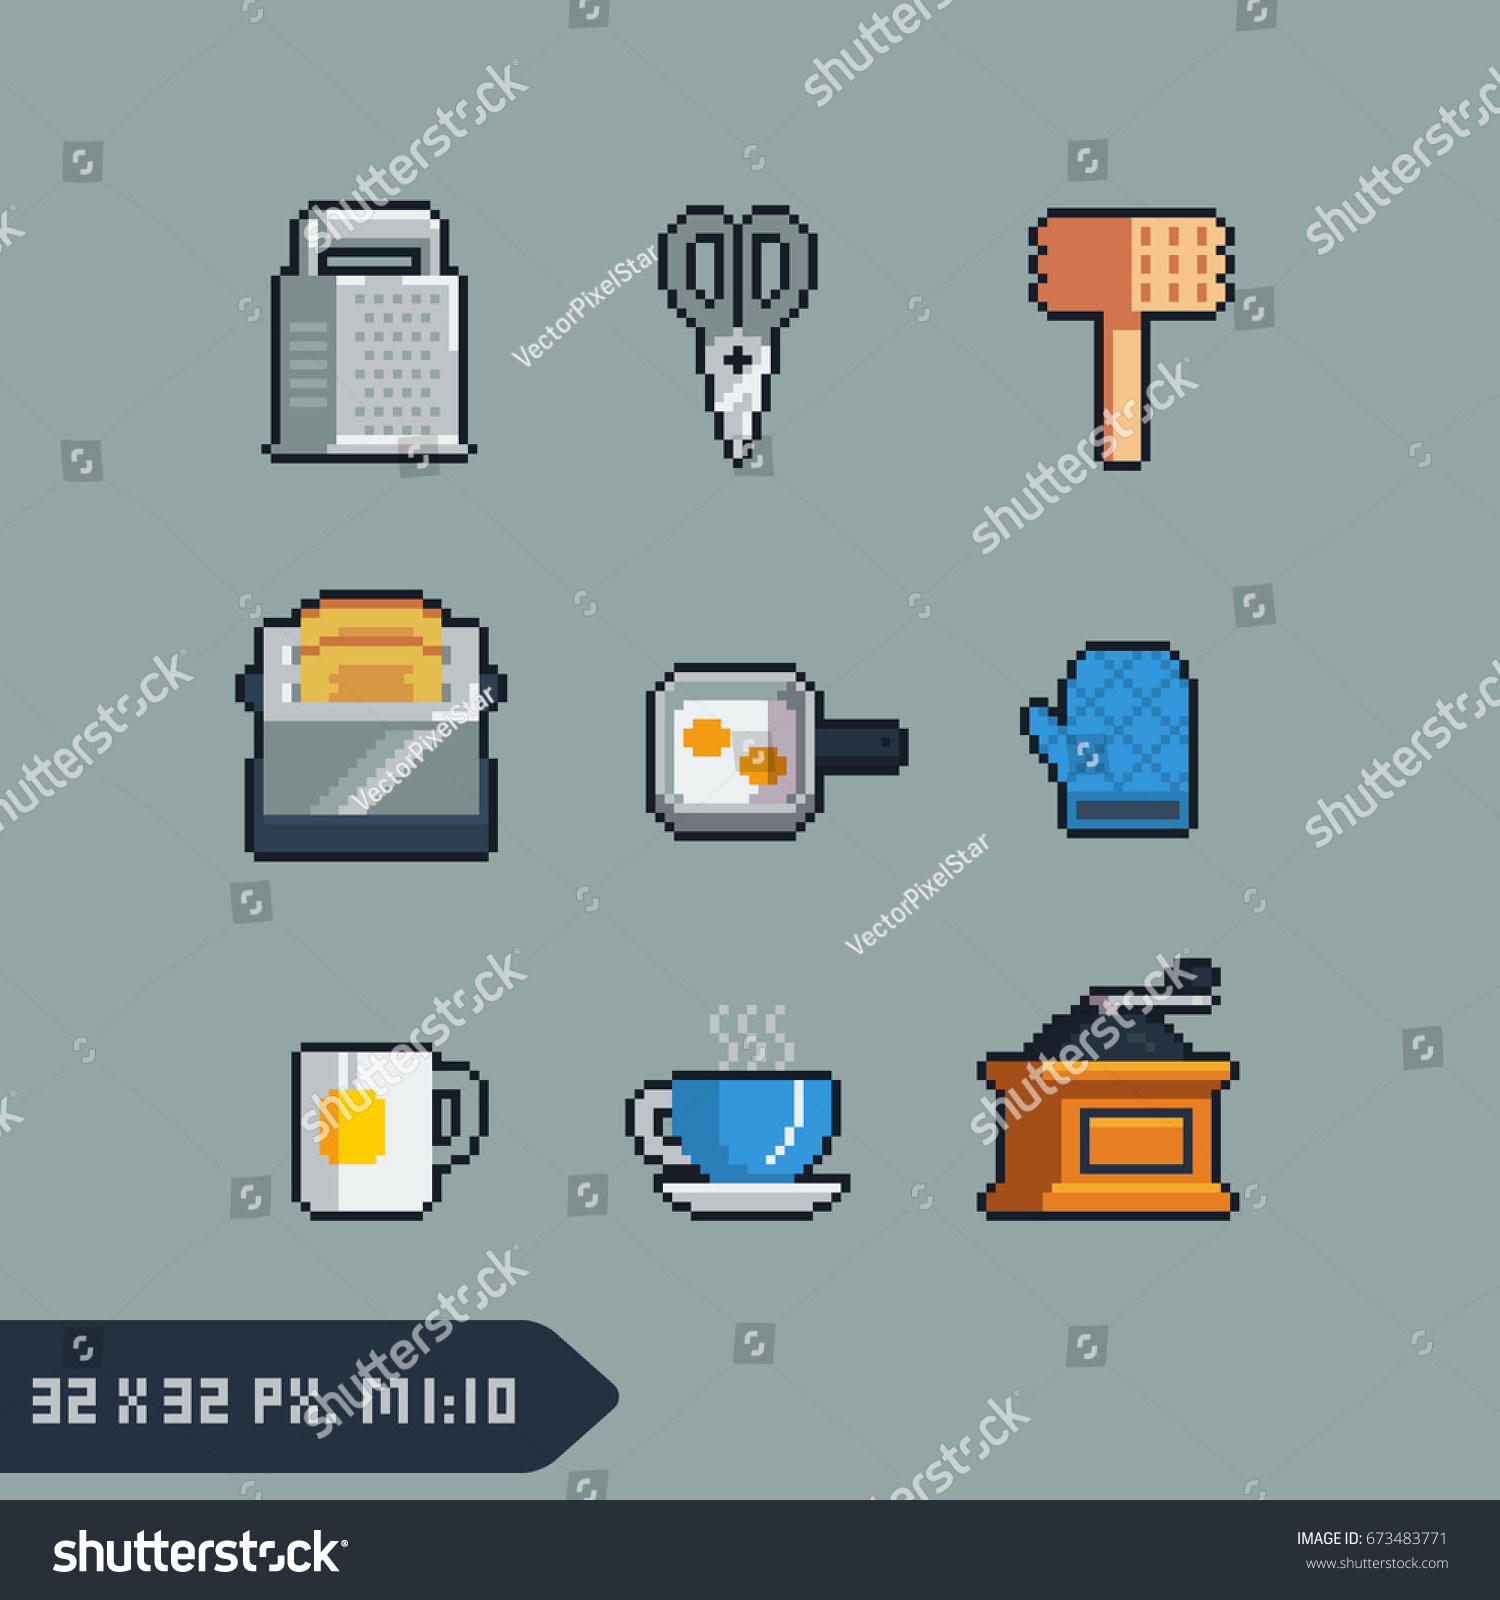 Pixel Art Style Kitchenware Icons 32 X 32 Stock Vector (Royalty Free ...